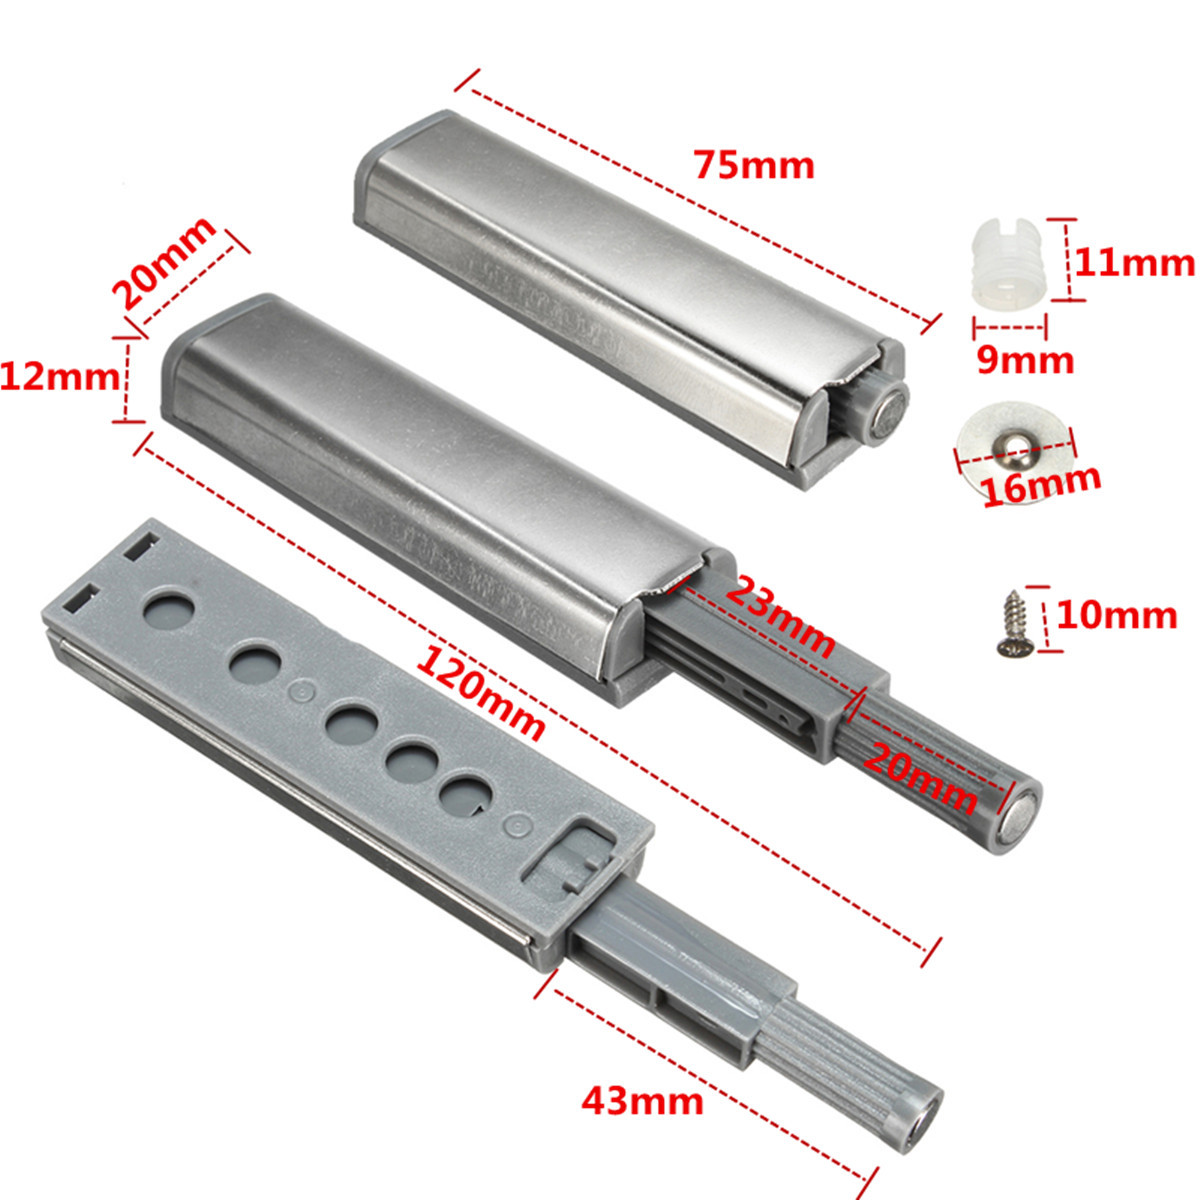 Cabinet Push Open Catch Touch Latch Magnetic Tip Damper Buffer Drawer Door Push to Open System